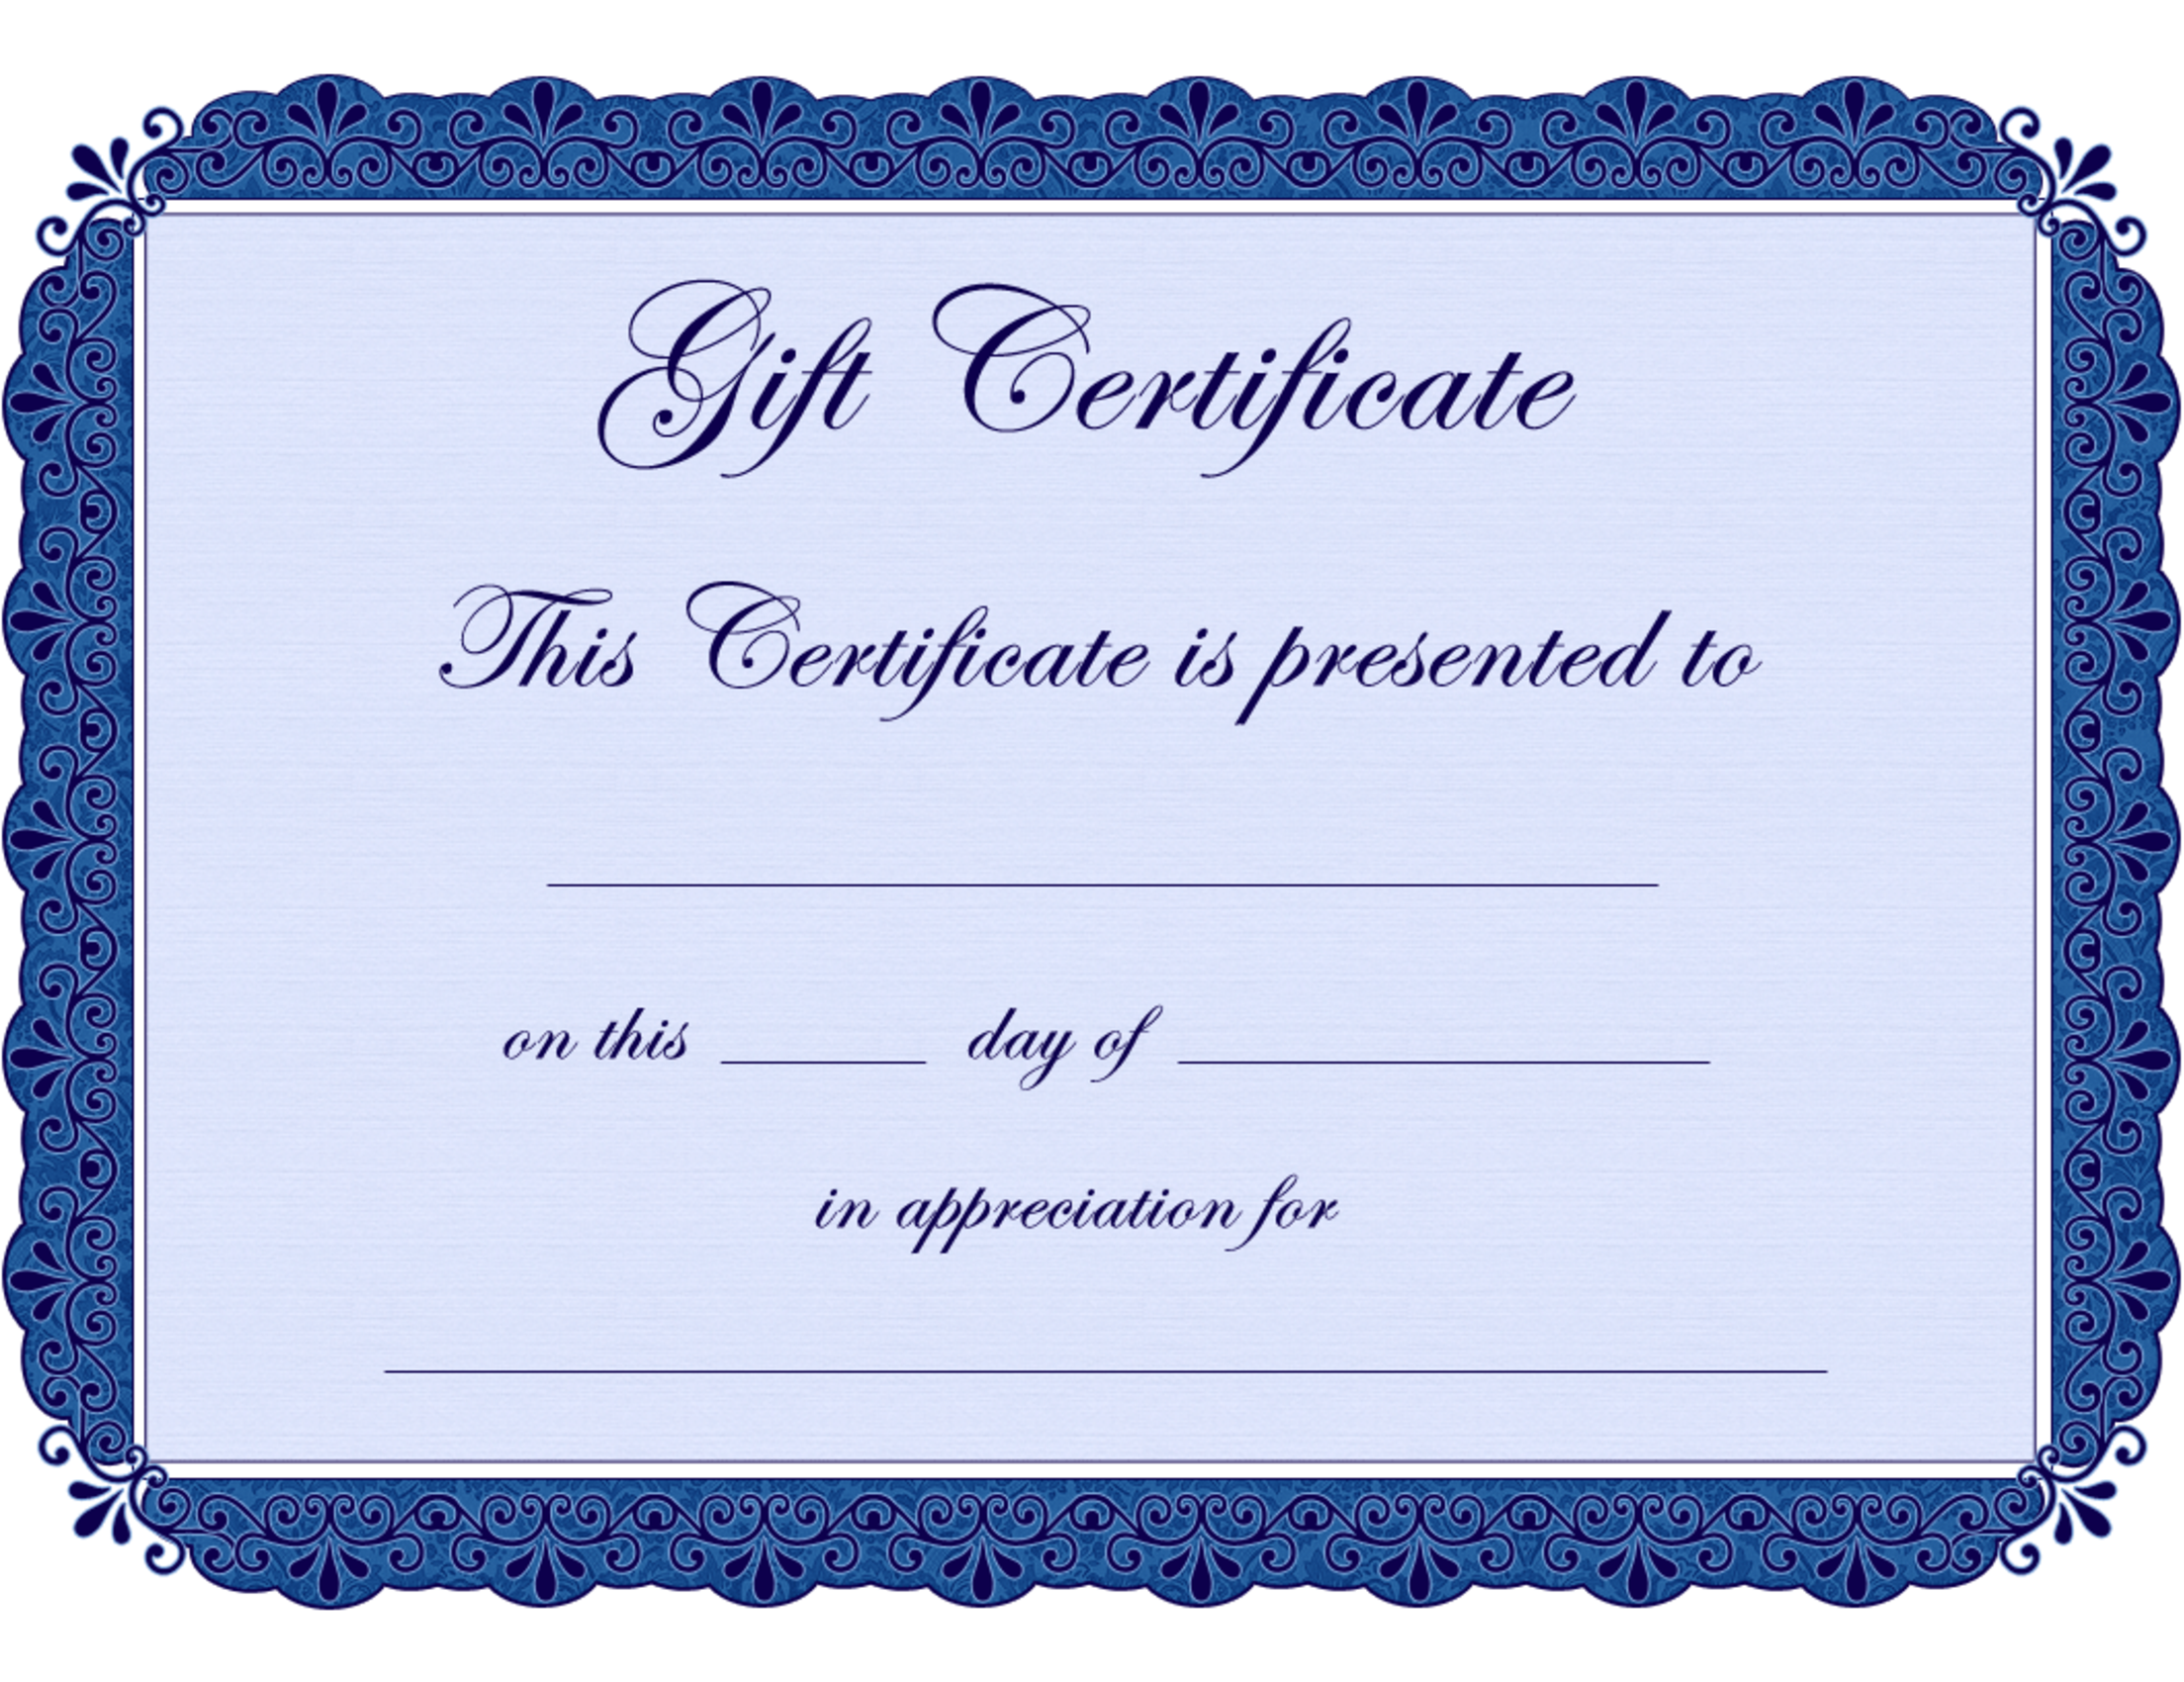 Template For Certificate – Personalized Gift Certificates Template Free